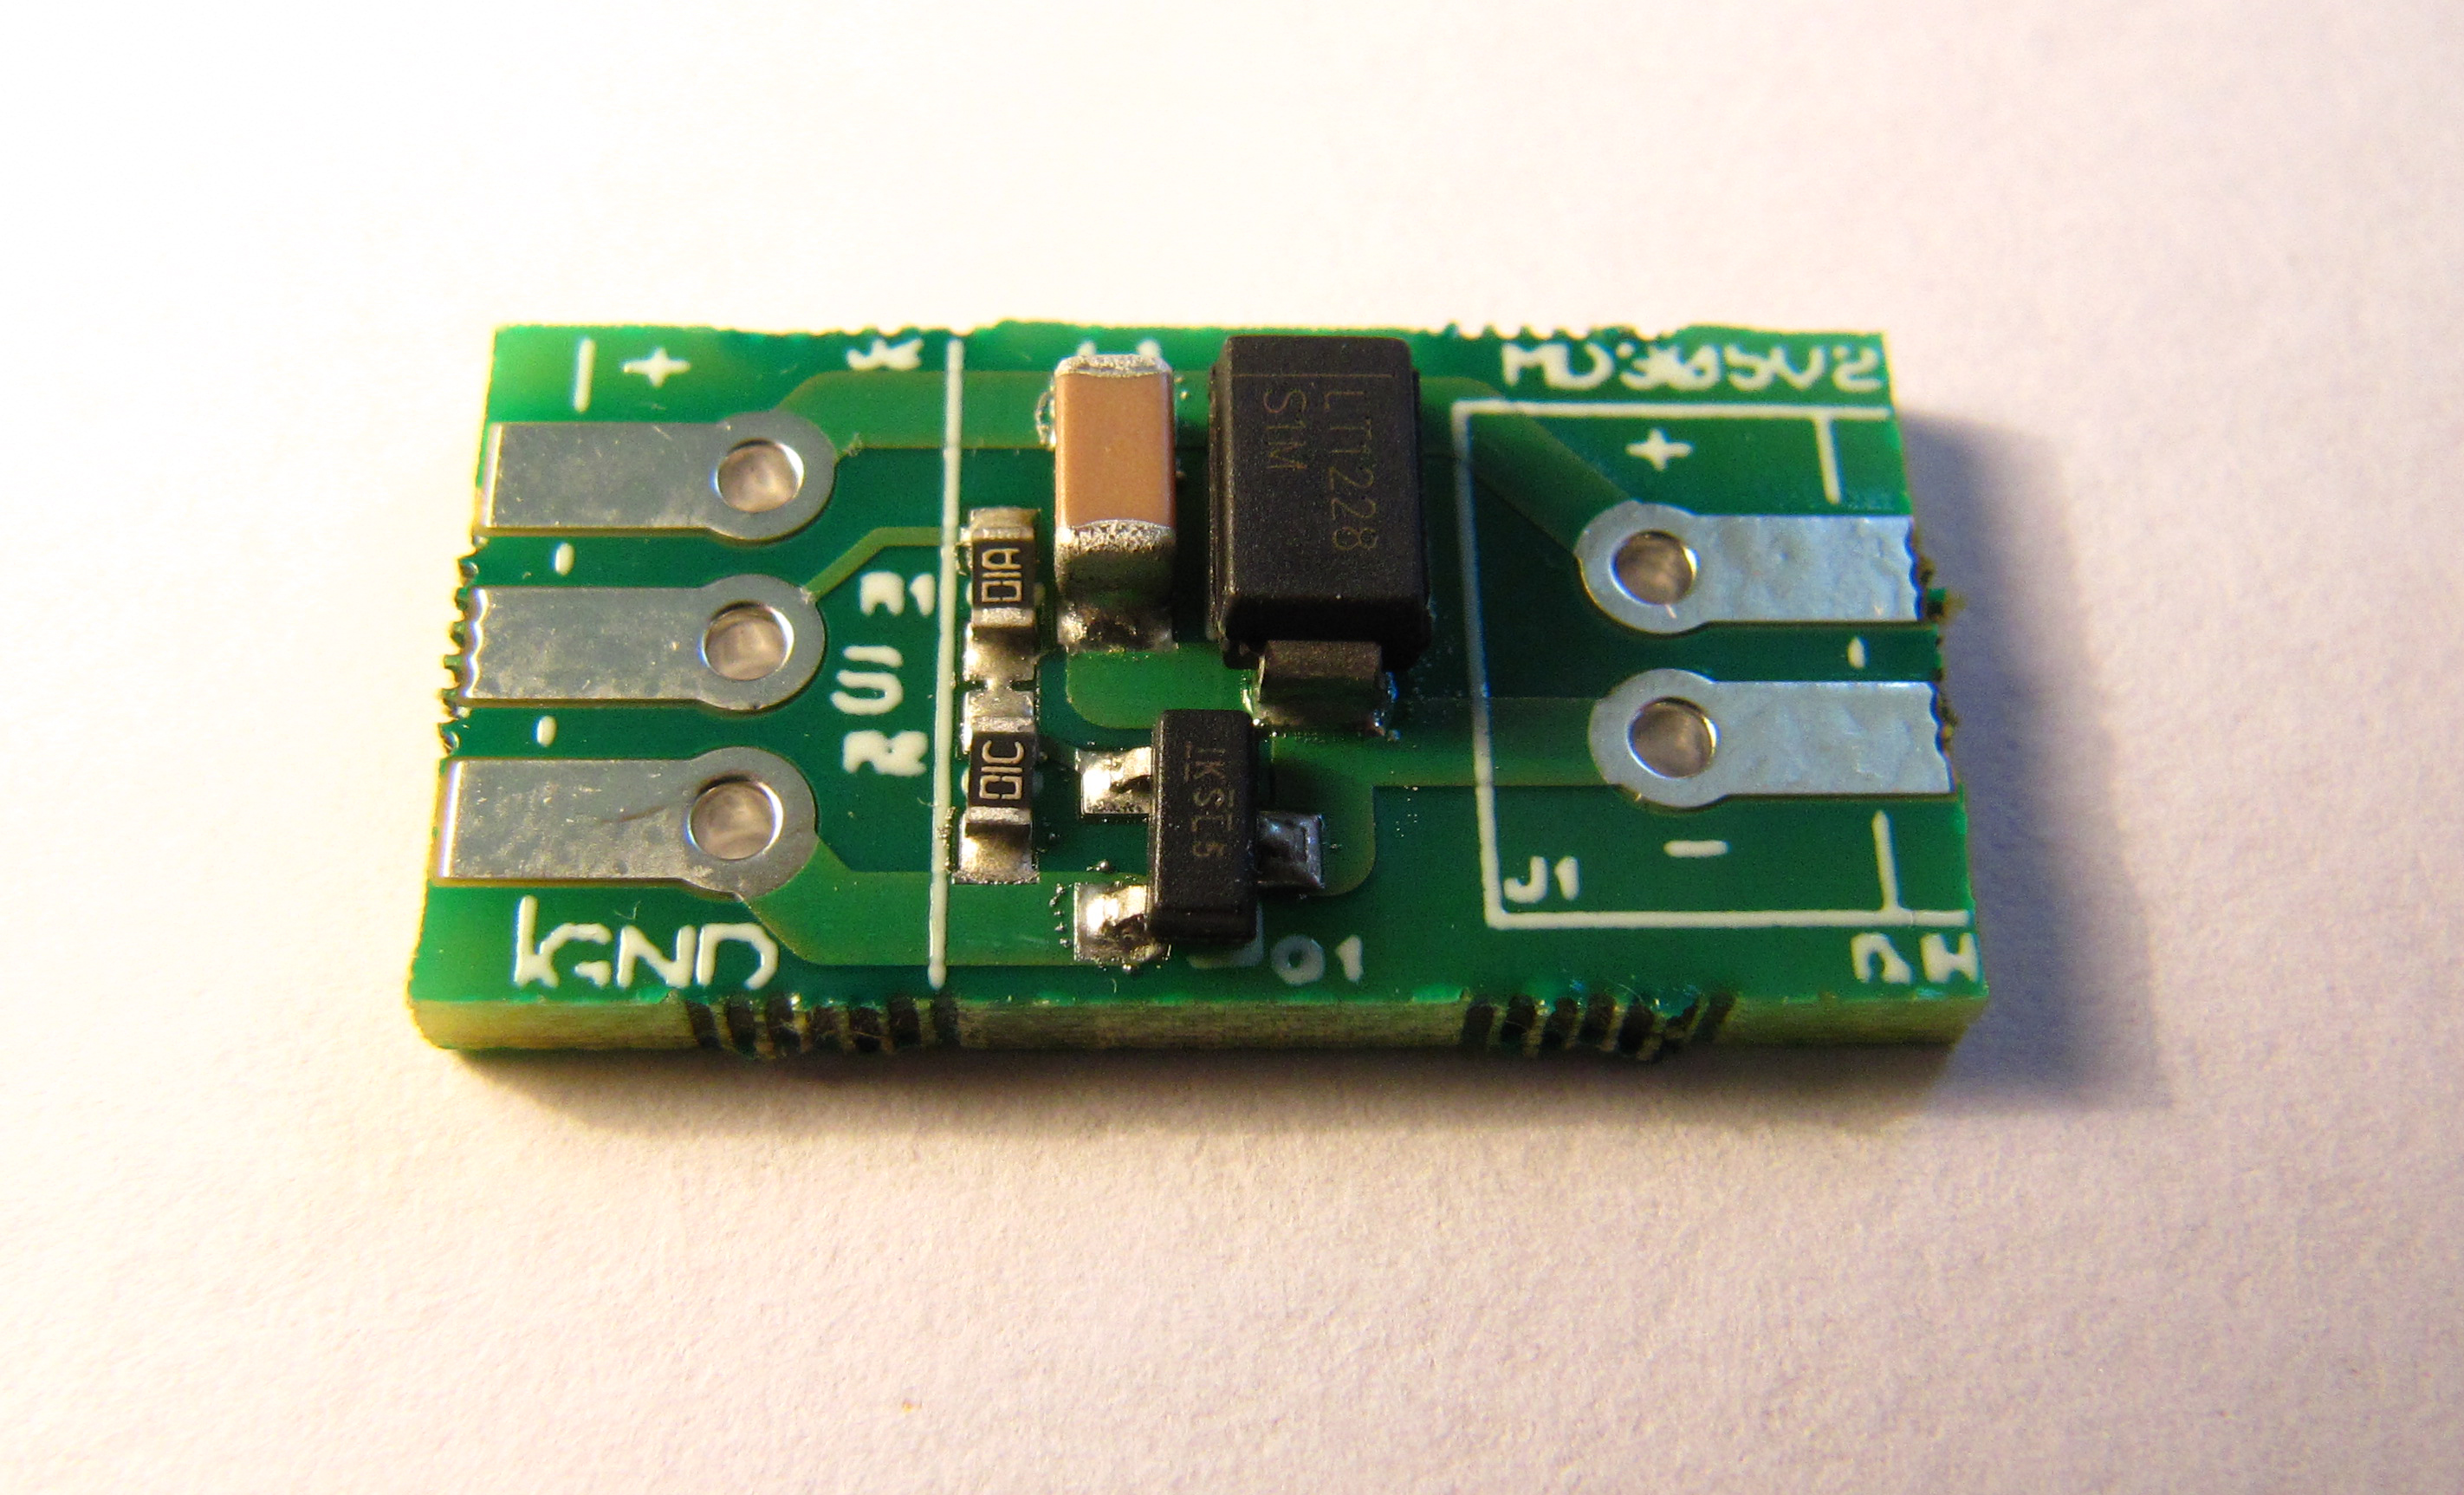 Soldering an SMT MOSFET Driver with a hotplate